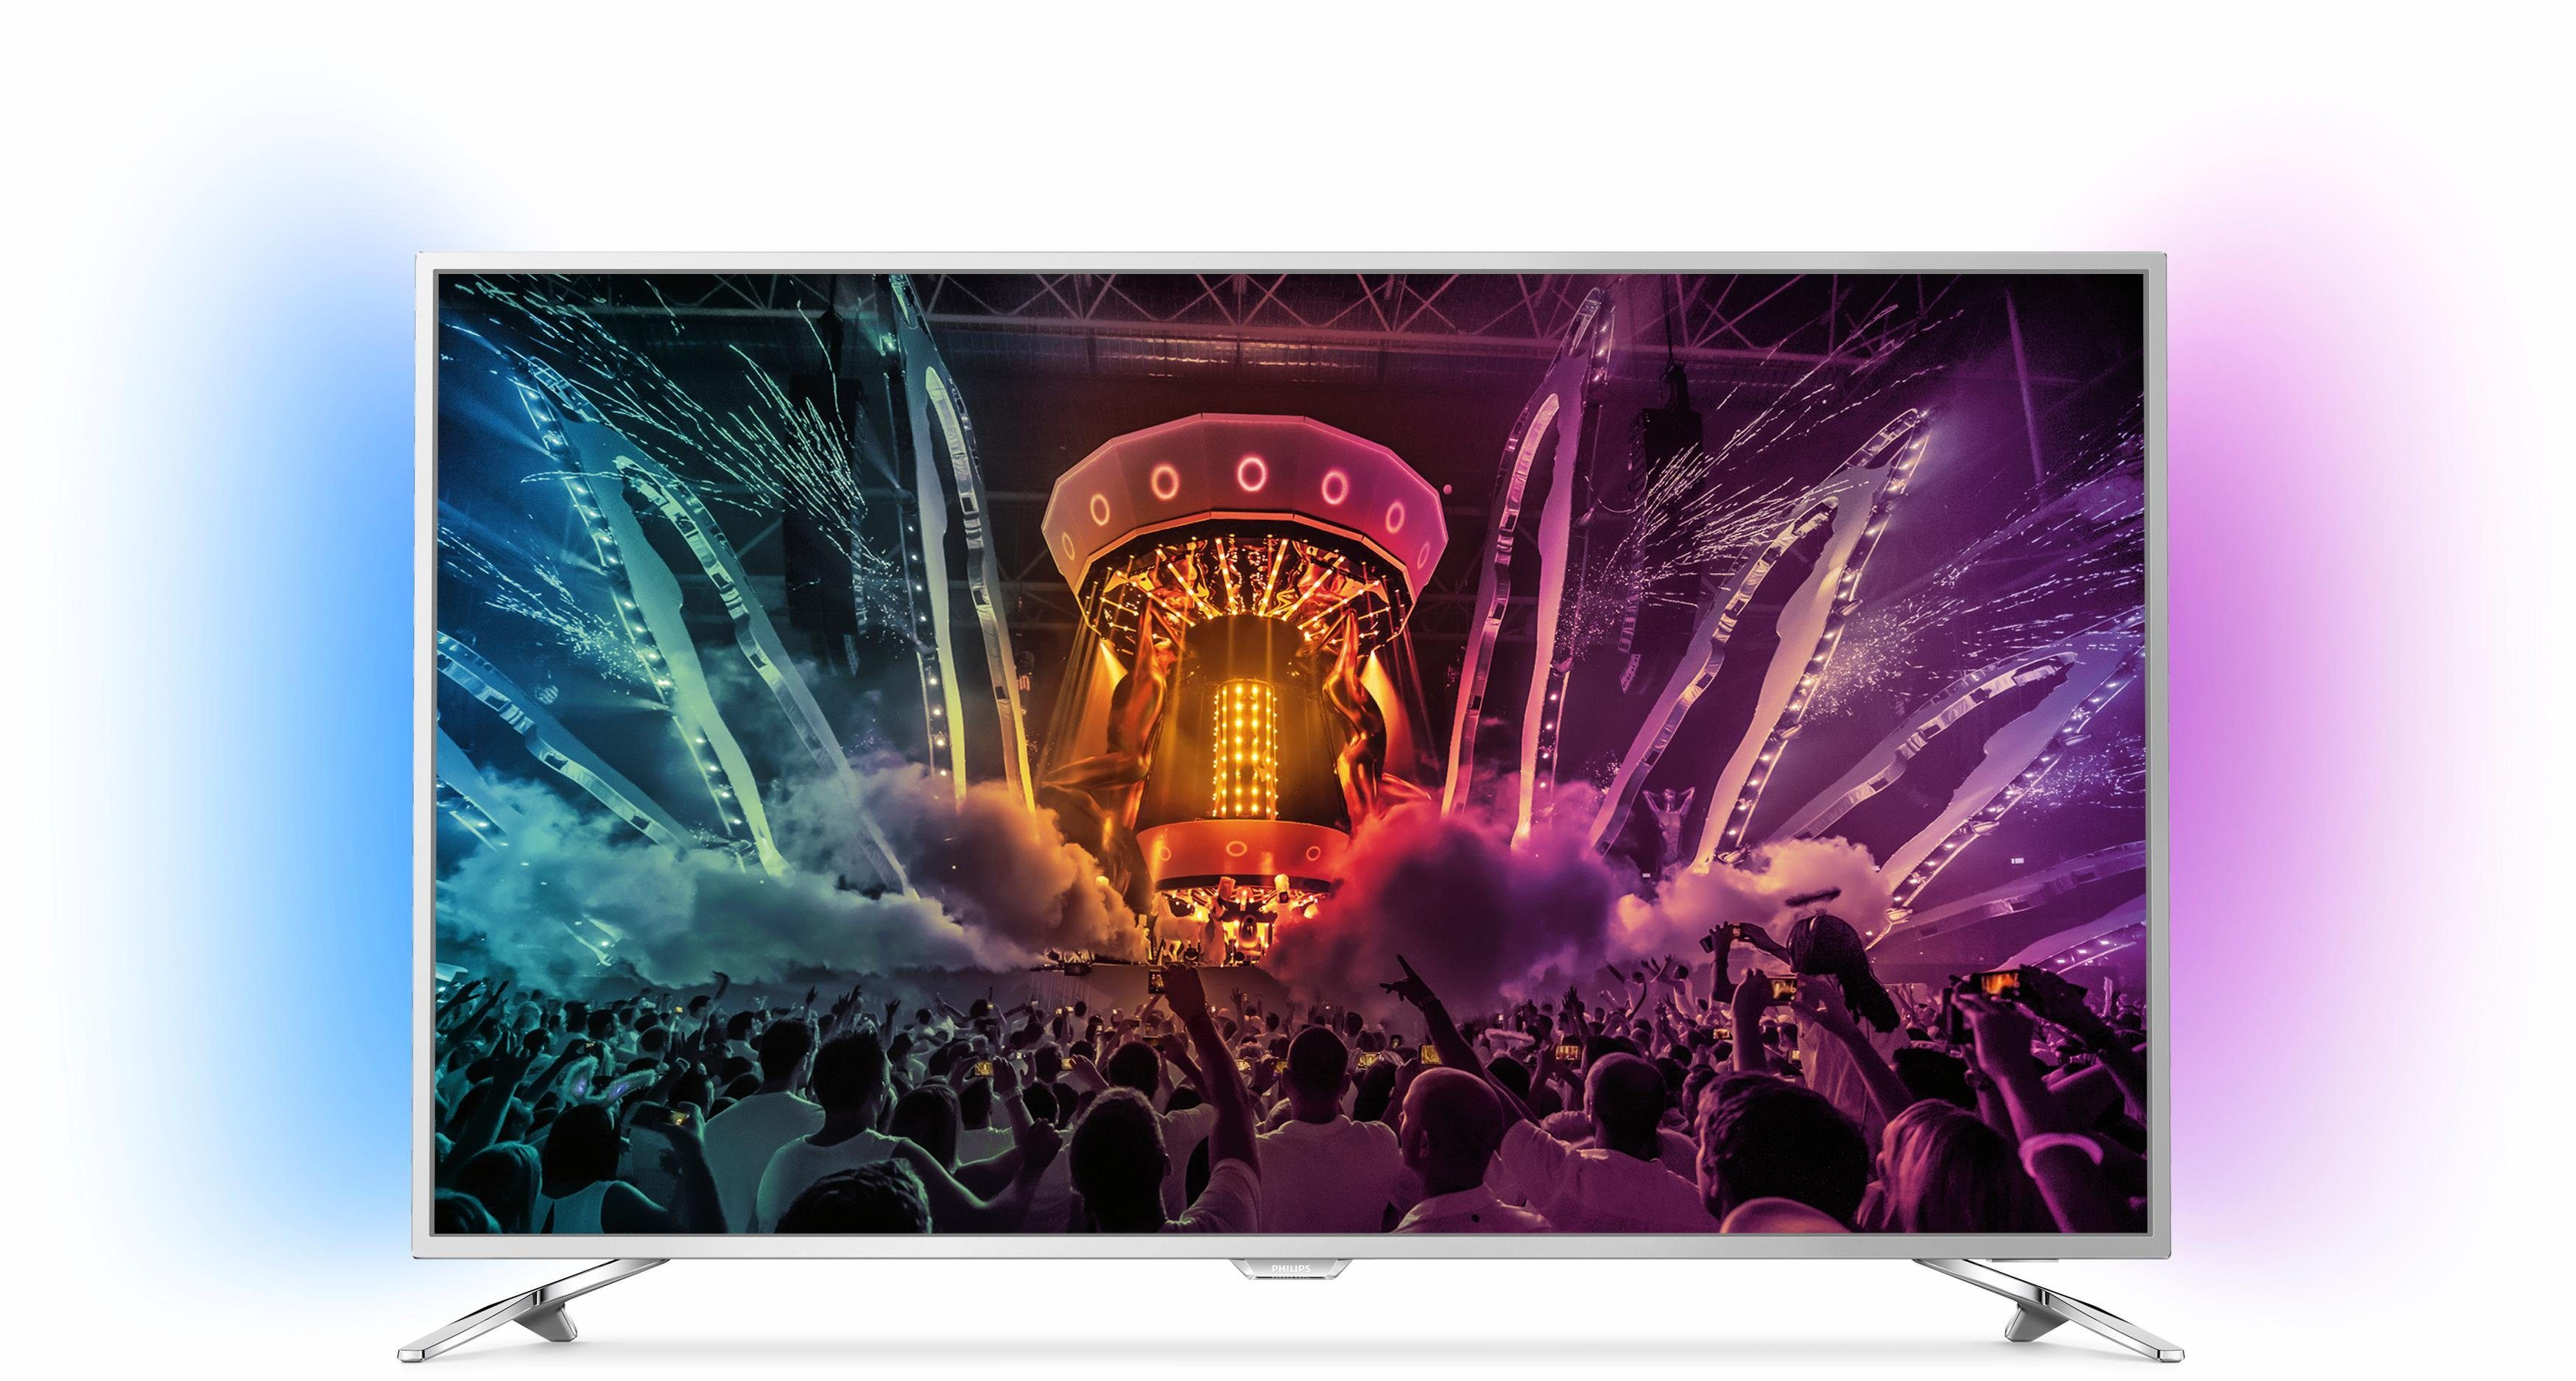 Philips 43PUS6501/12, LED Fernseher, 108 cm (43 Zoll), 2160p (4K Ultra HD) Ambilight, Smart-TV